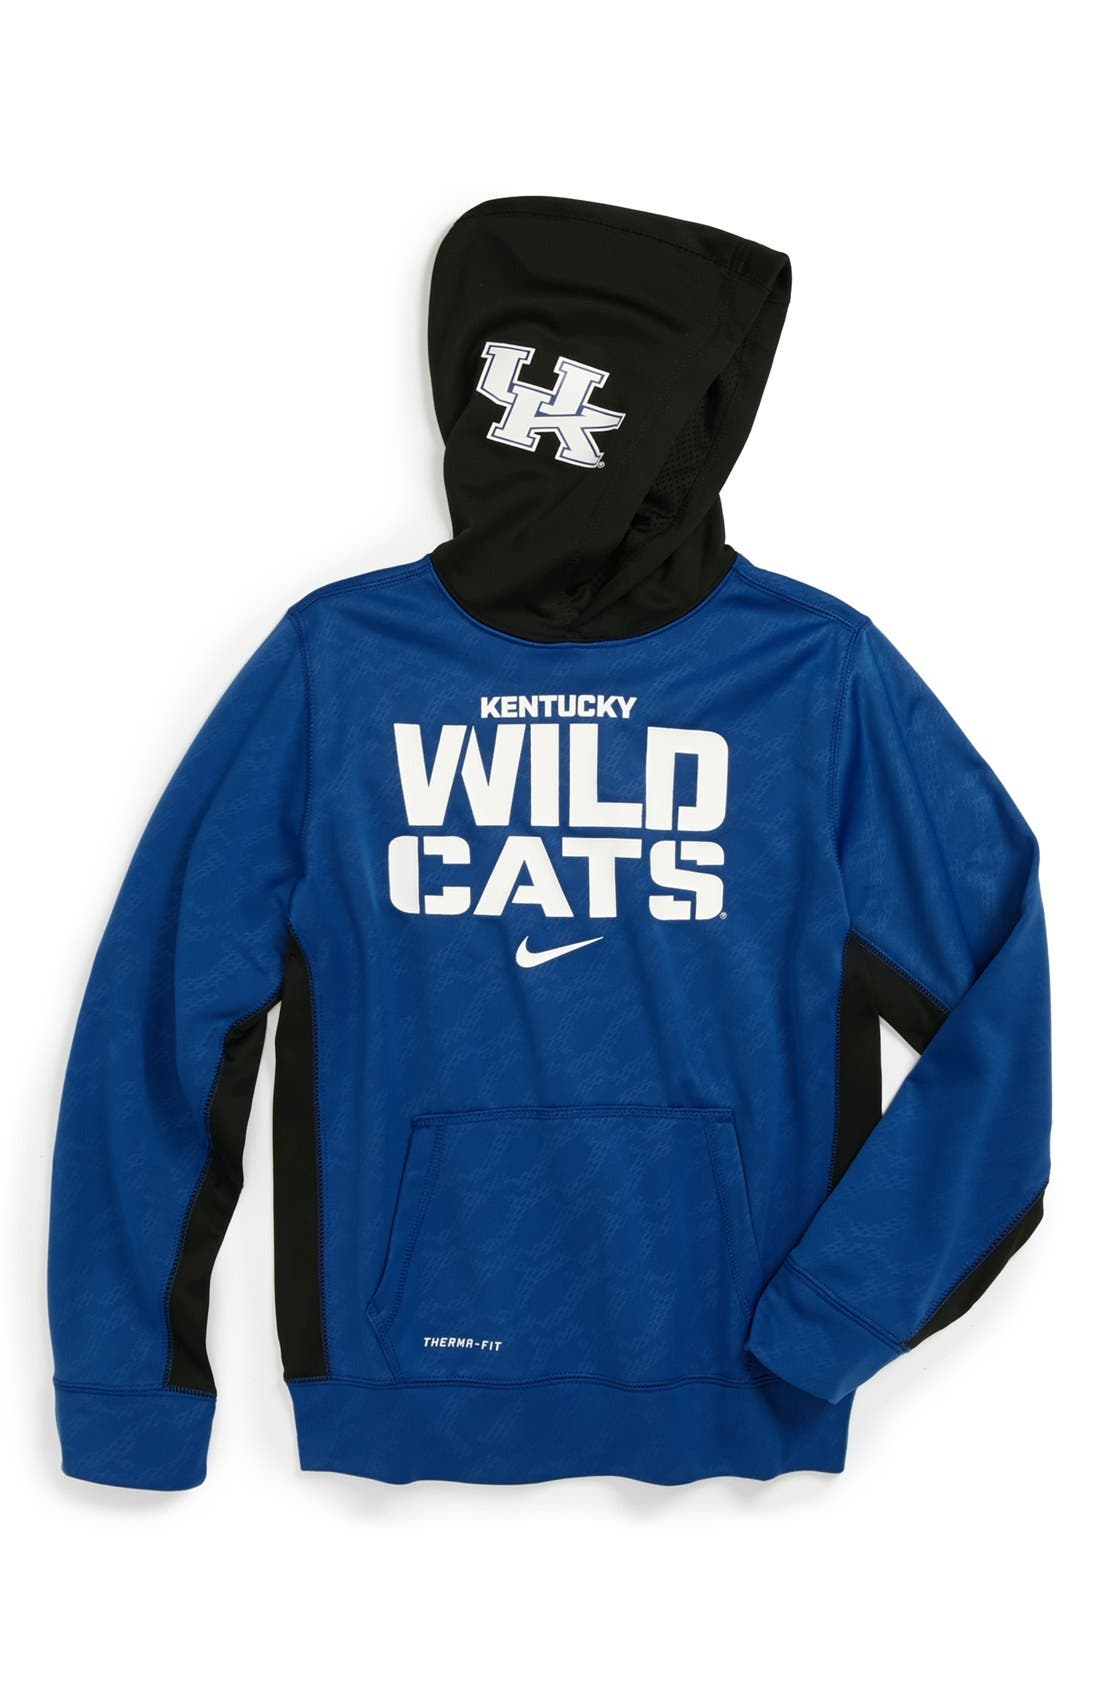 Alternate Image 1 Selected - Nike 'Kentucky Wildcats' Therma-FIT Pullover Hoodie (Big Boys)